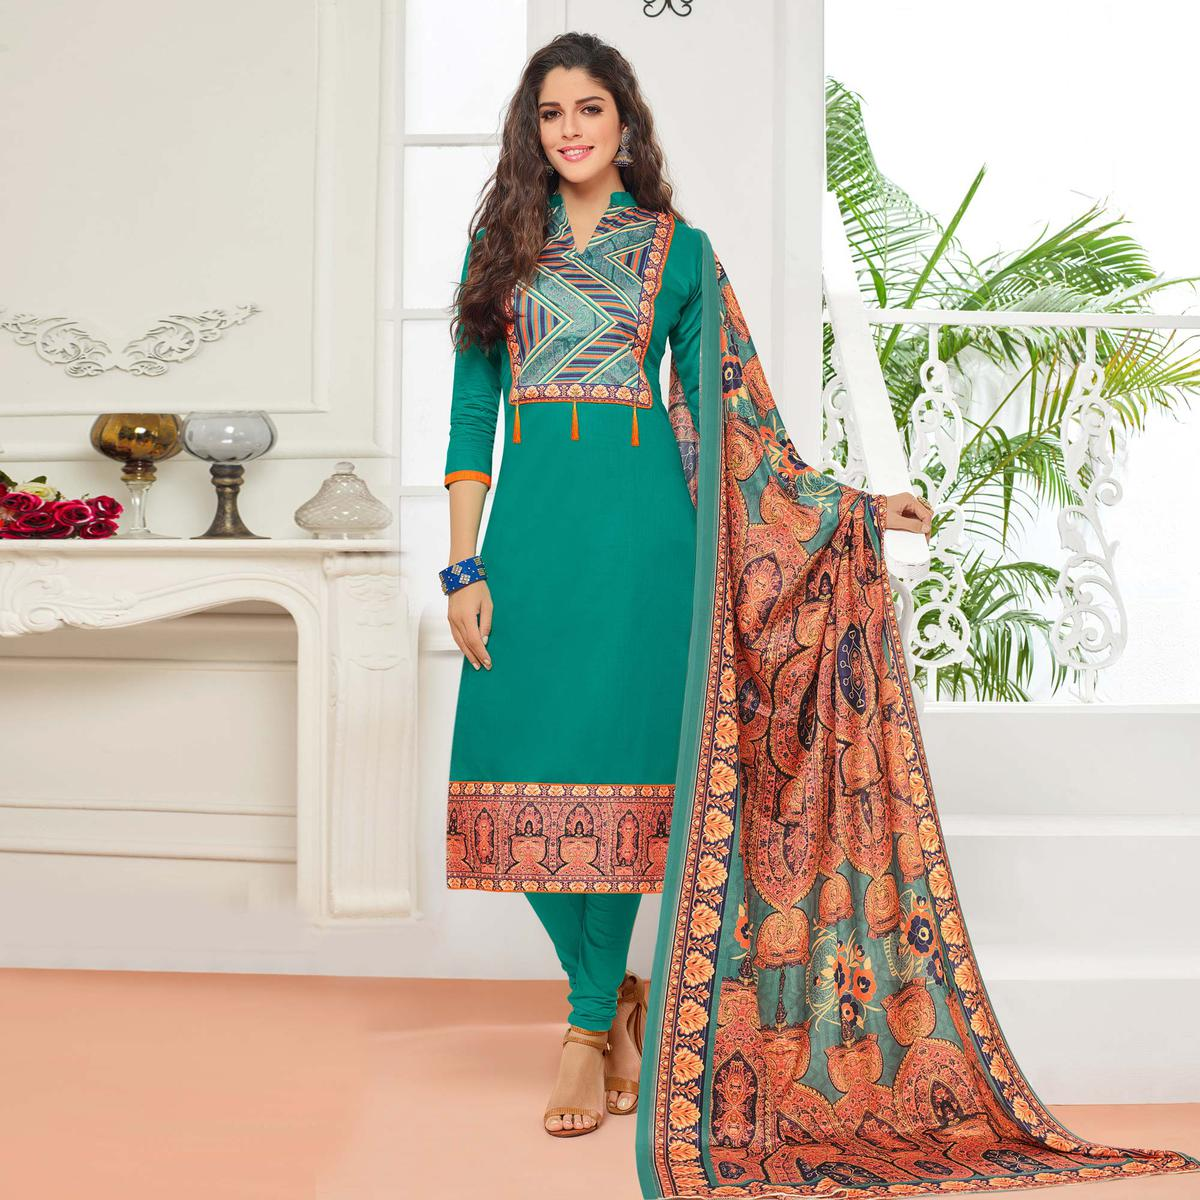 Rama Green Casual Wear Digital Printed Glaze Cotton Dress Material